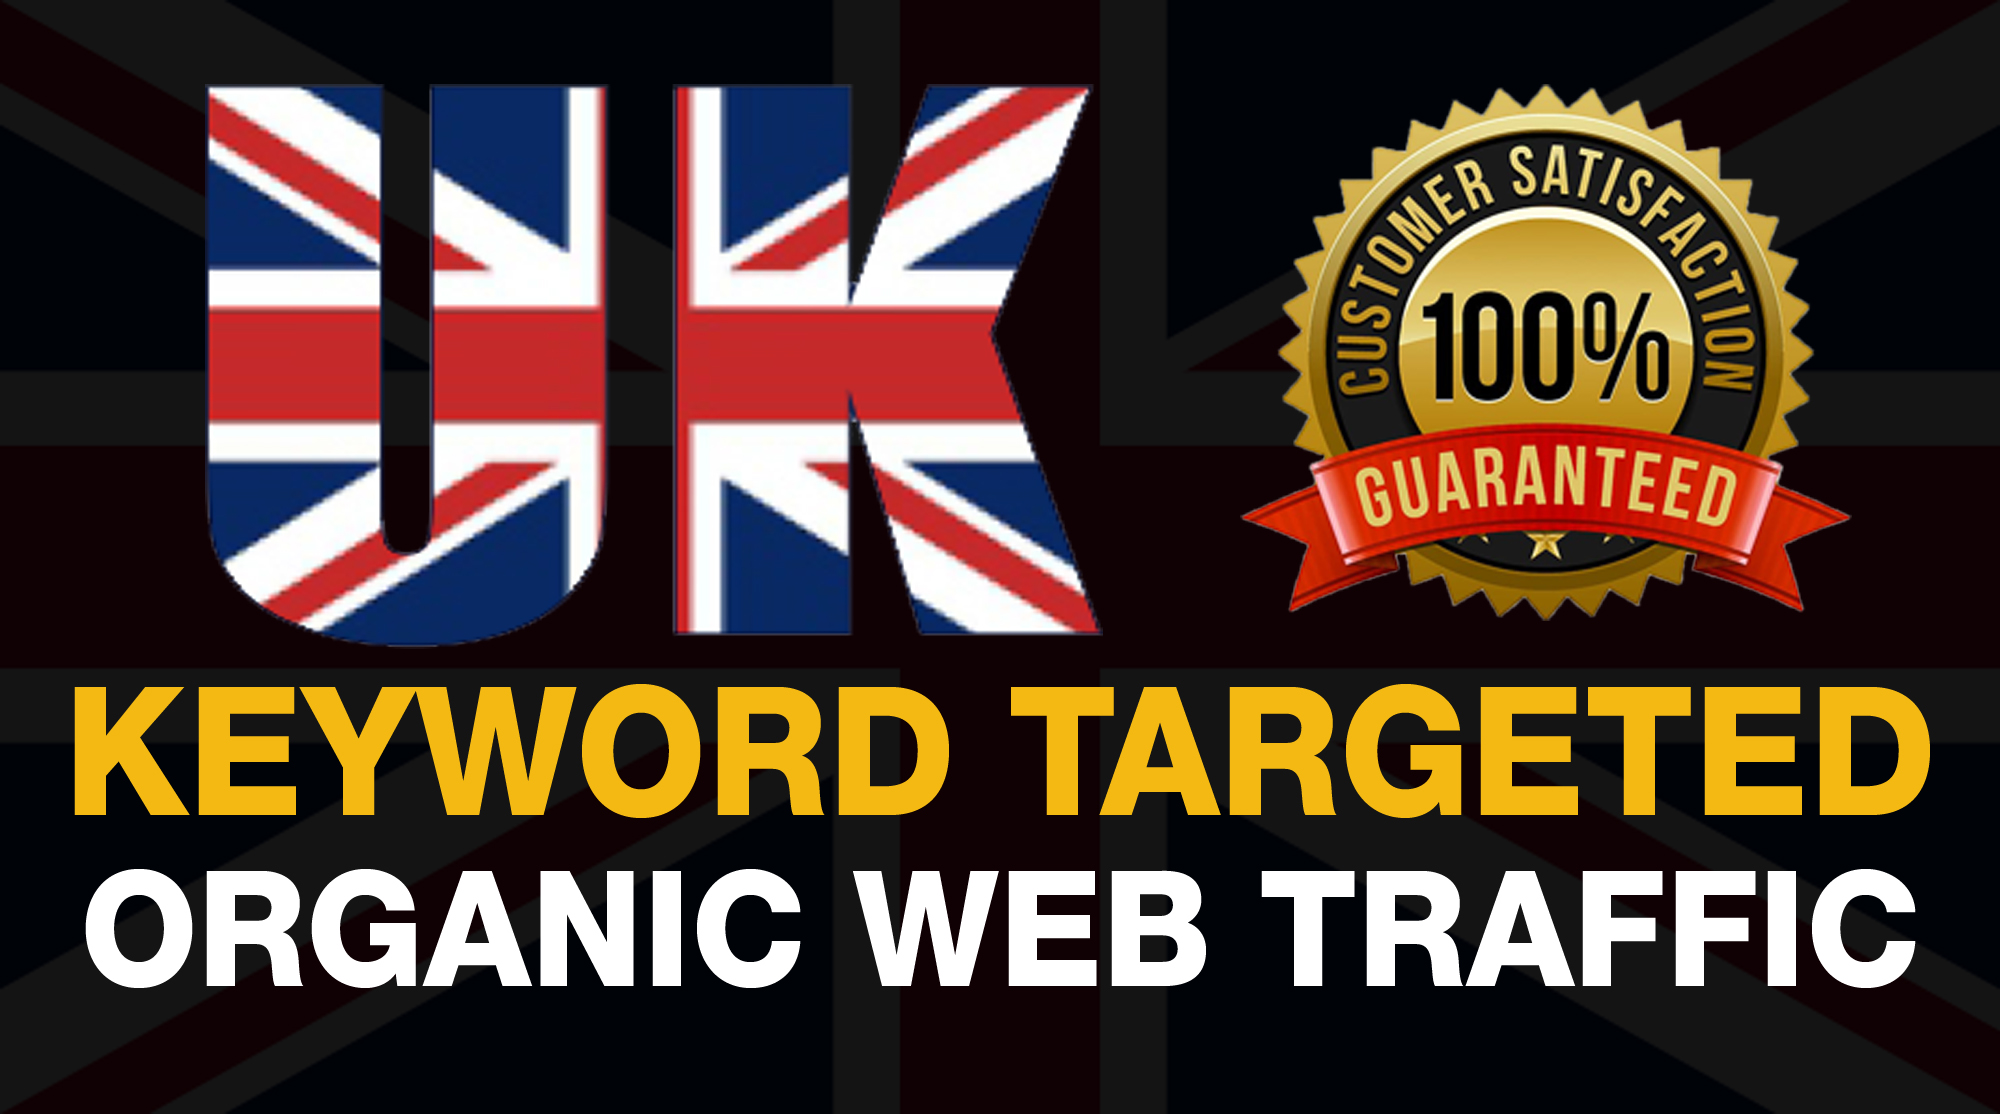 we will drive keyword targeted and real organic UK web traffic